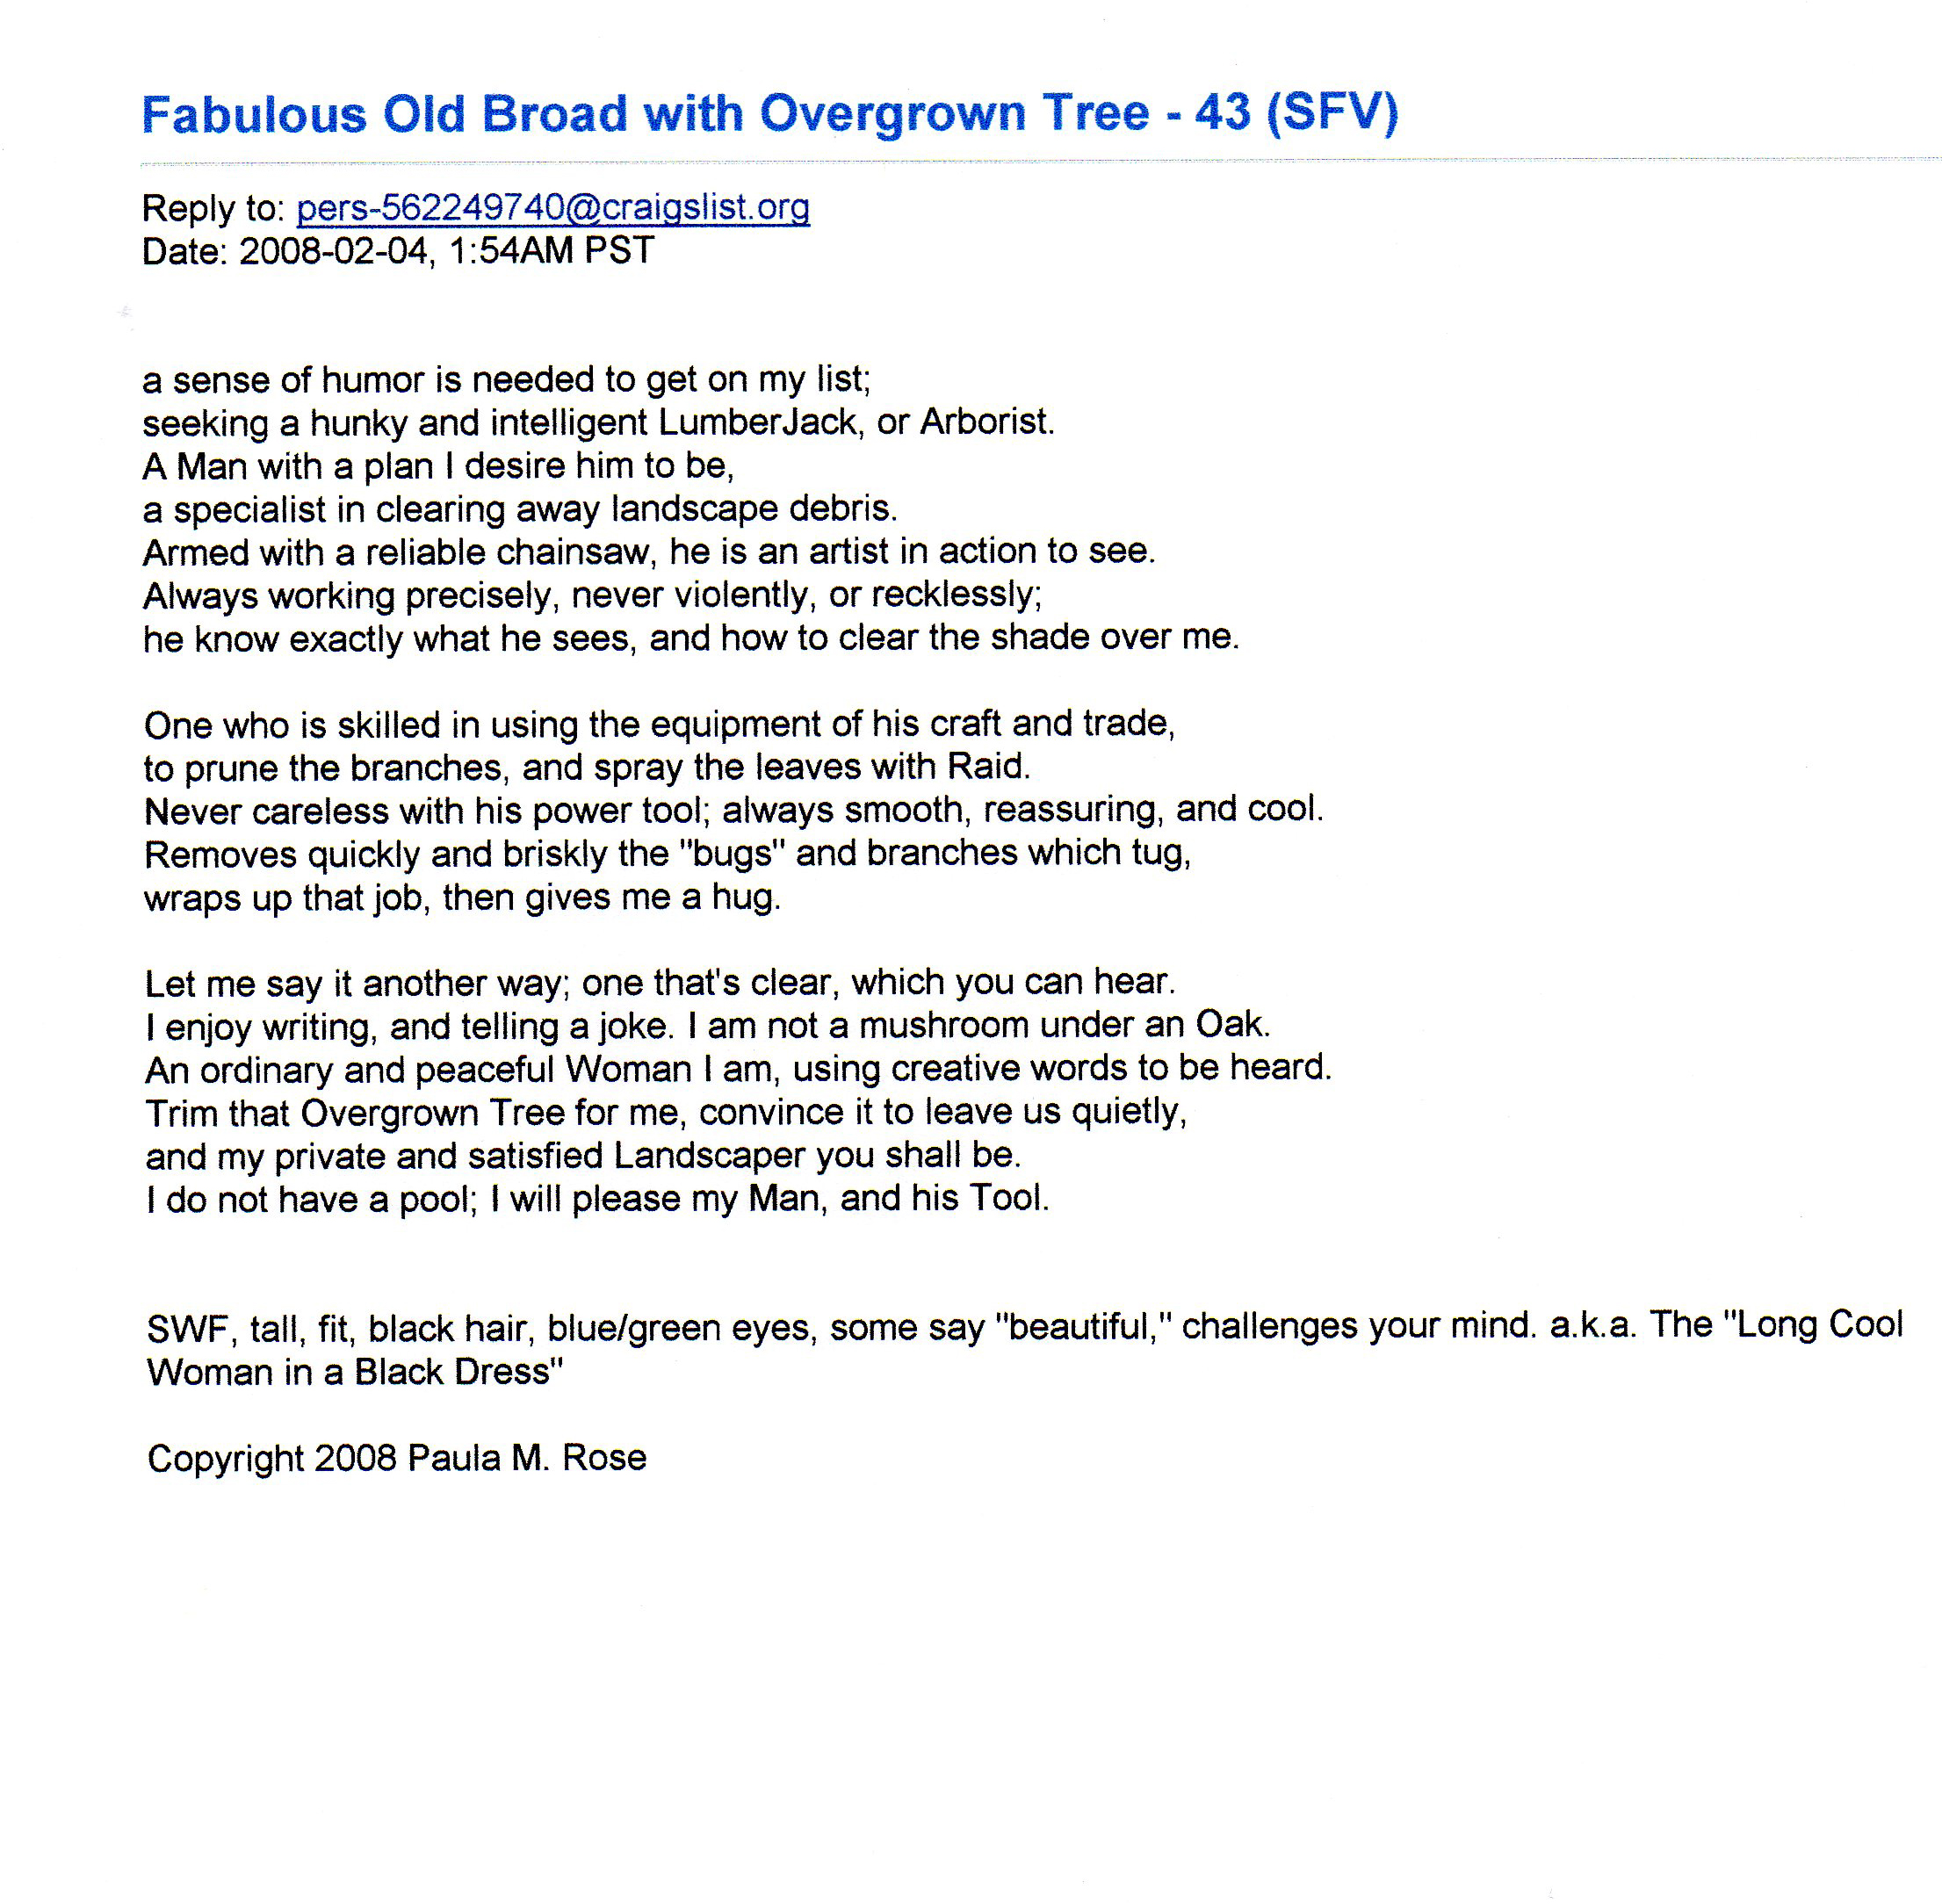 020 Describe Yourself Essay Example Poem 30 Fabulous Old Broad Awesome For Job Adjectives To College Application Full